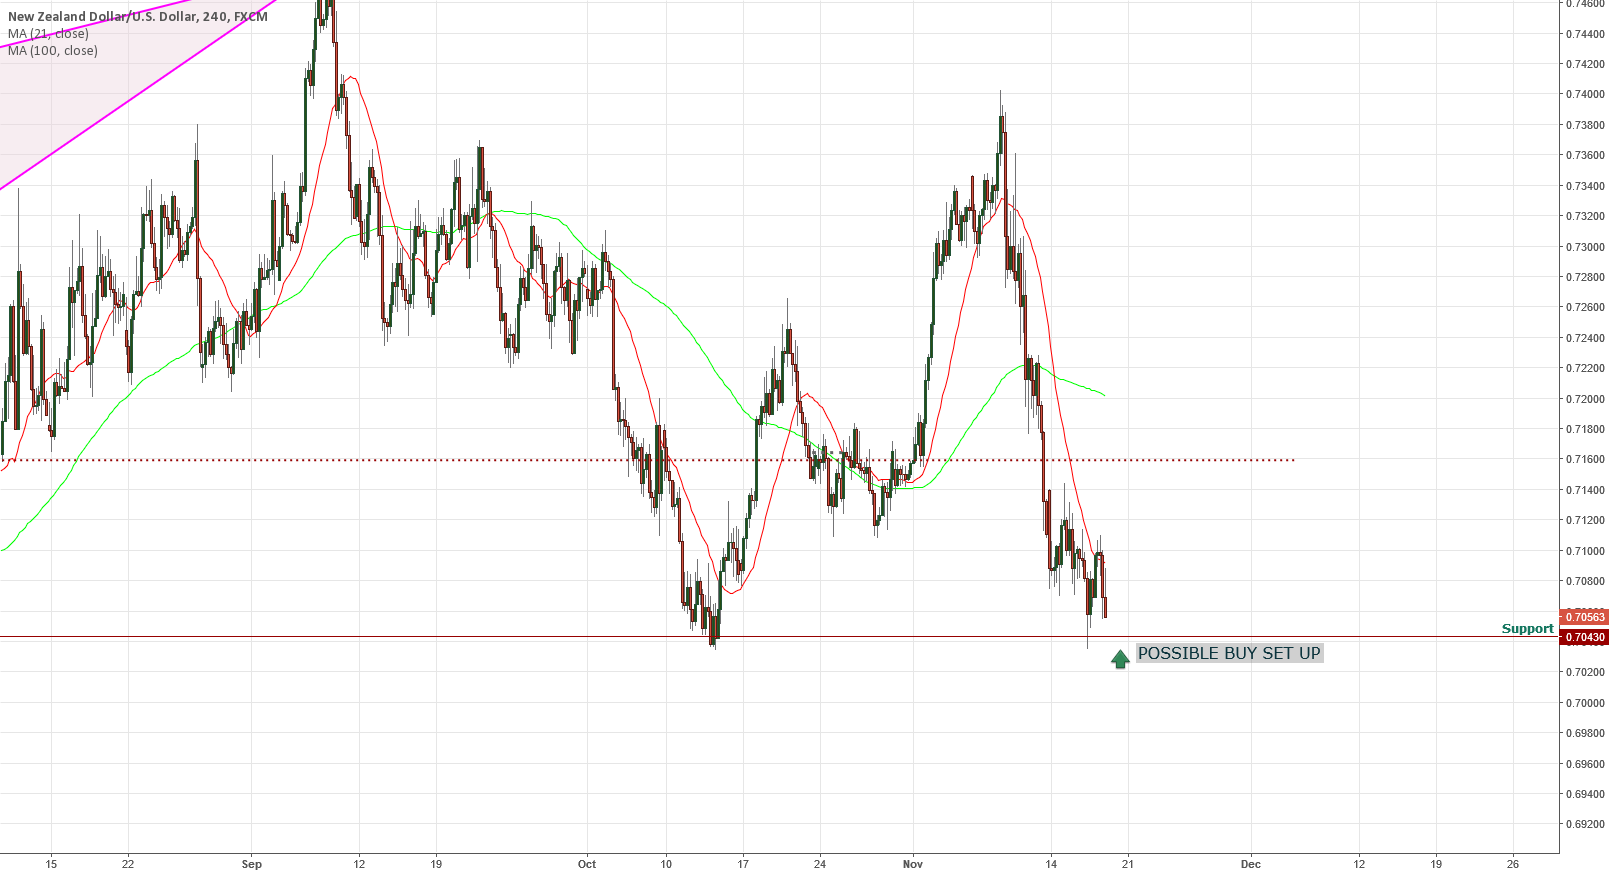 NZDUSD POSSIBLE BUY SET UP